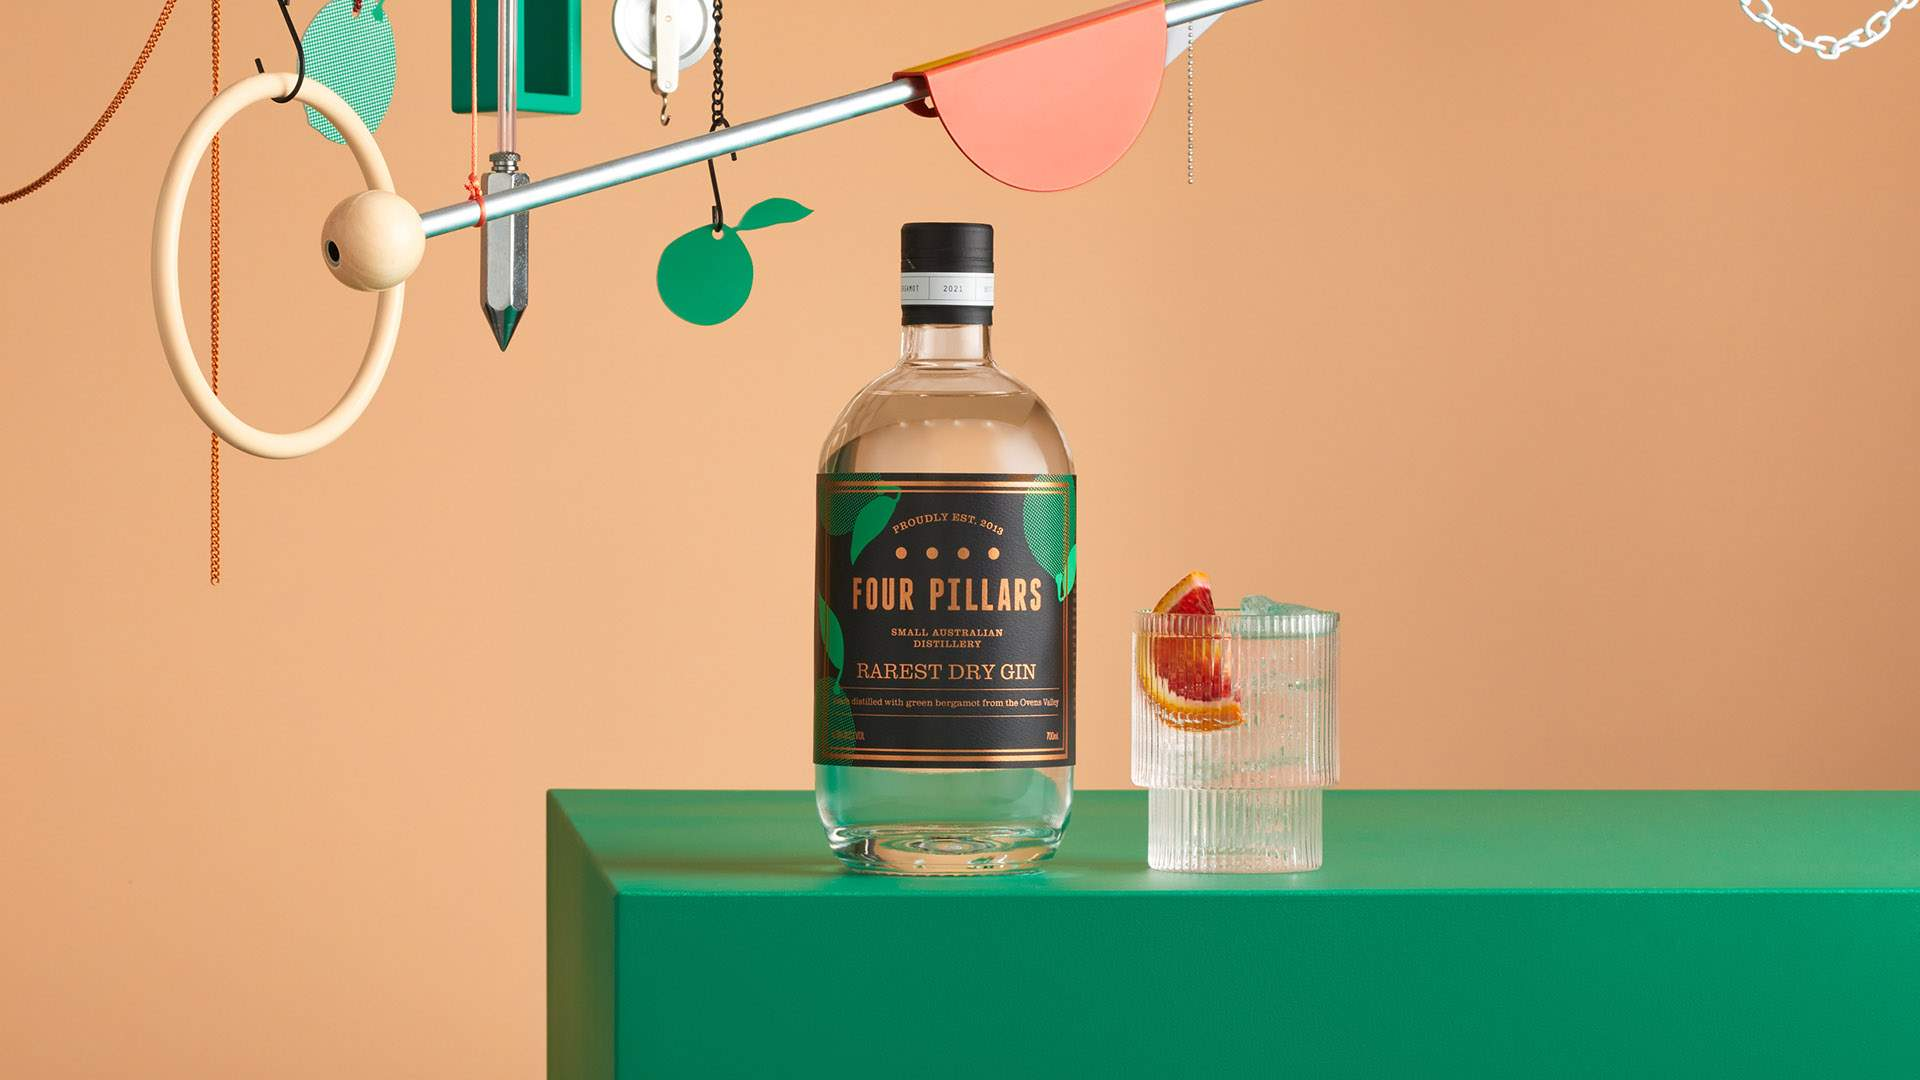 Four Pillars Is Releasing Two New Rare Dry Gins So You'd Best Make Room On Your Gin Shelf